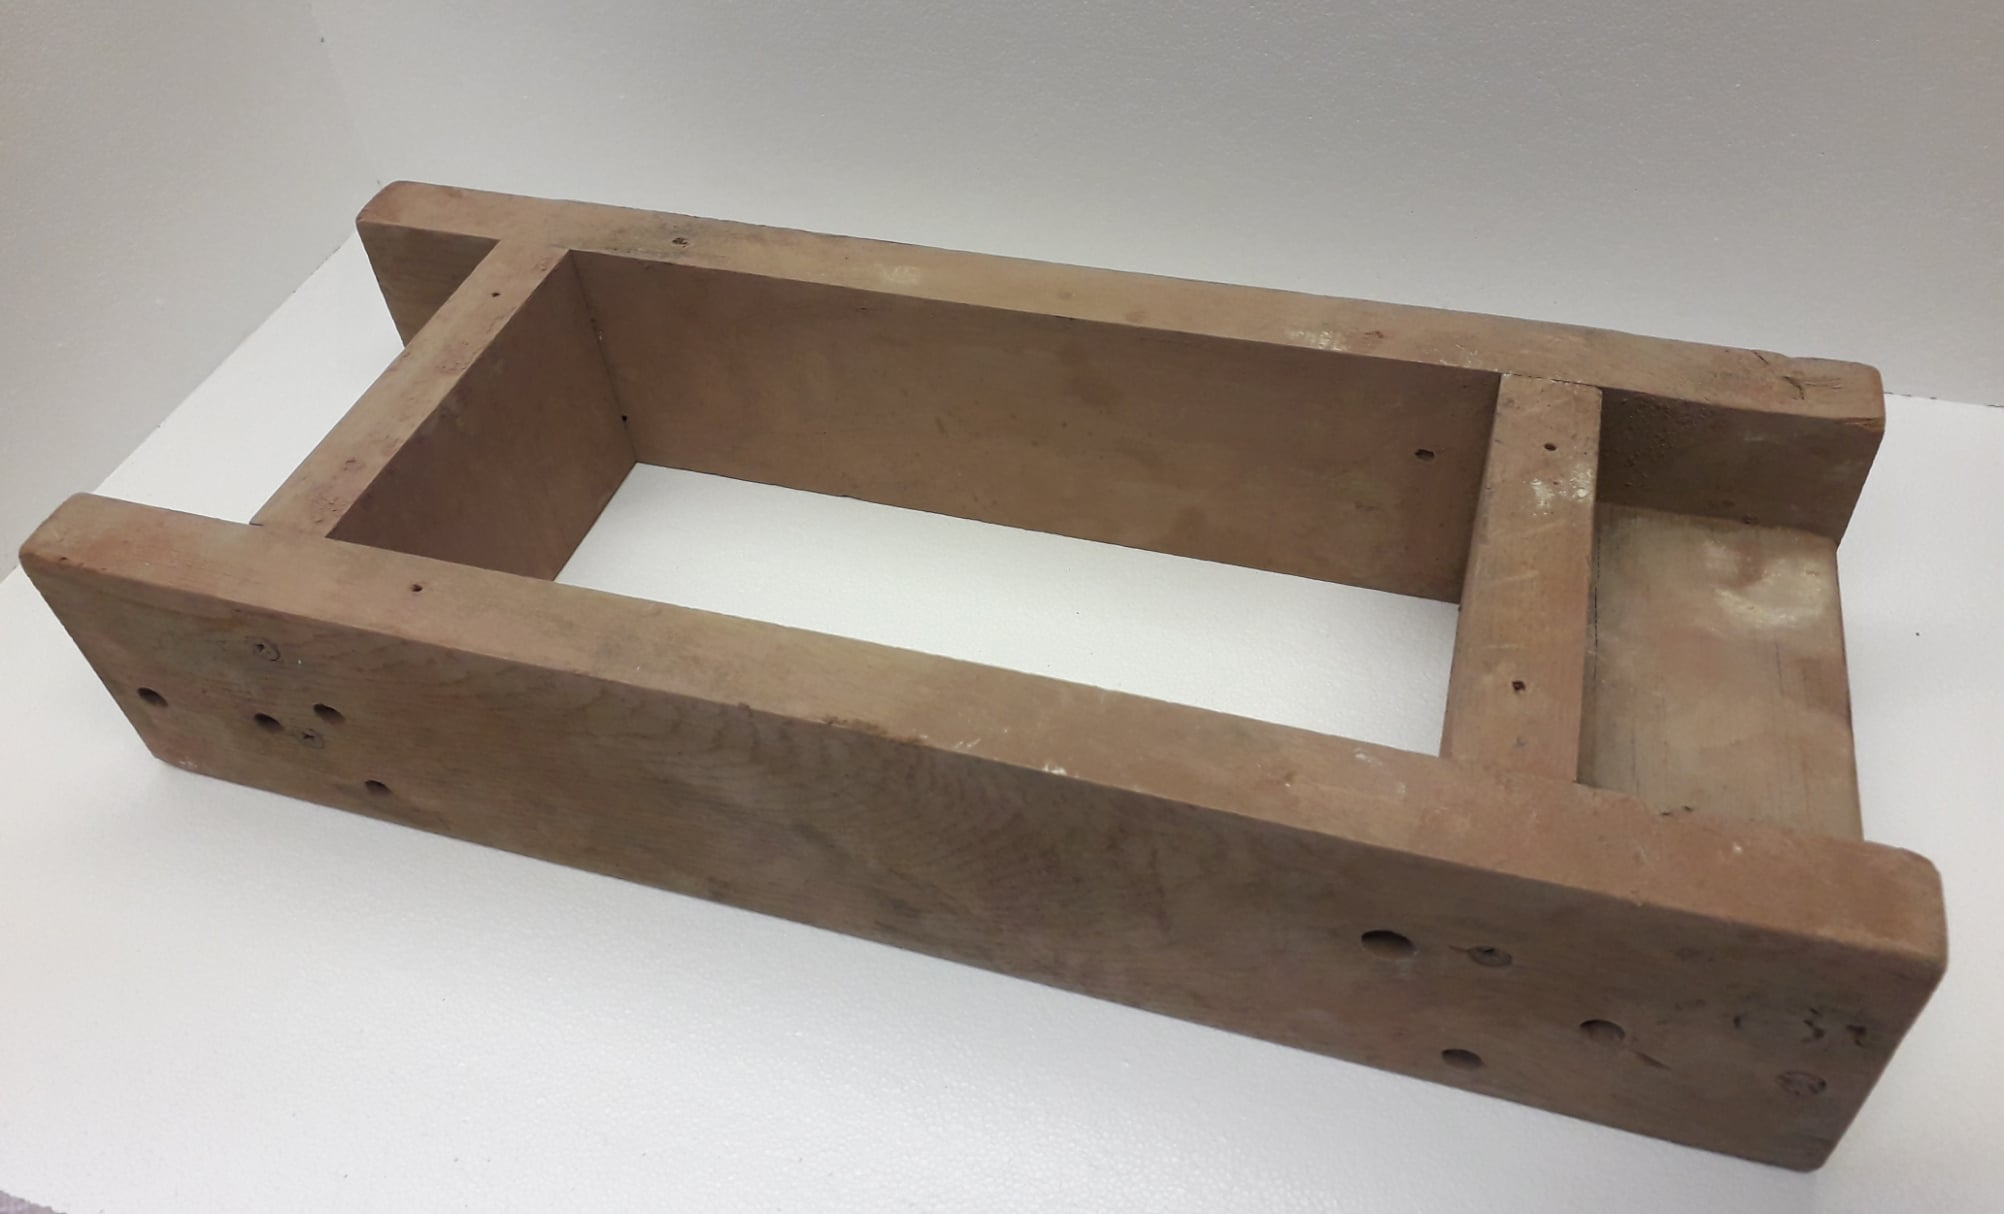 A wooden open bottomed brick mould for handmaking bricks